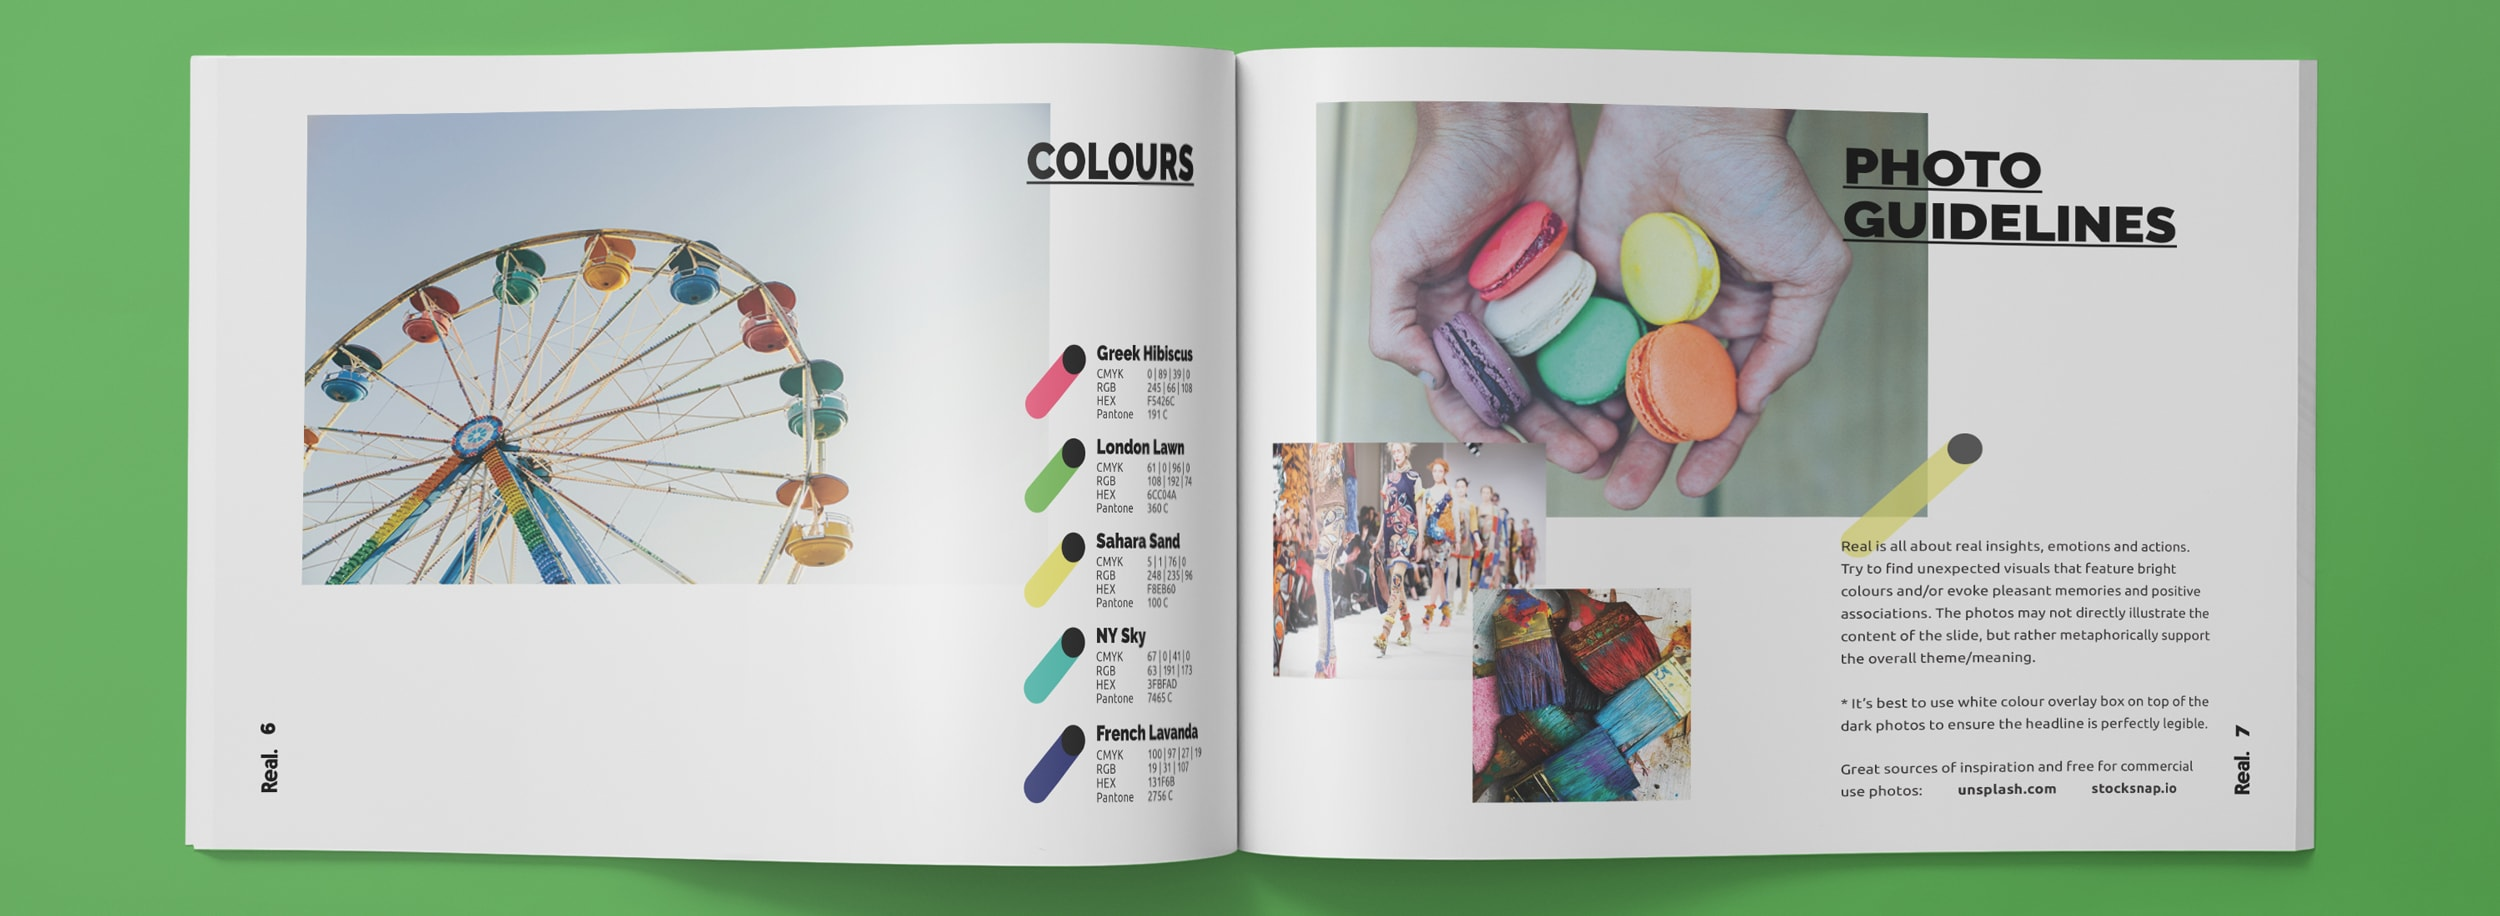 Real Brandbook: Colours and Photo Guidelines